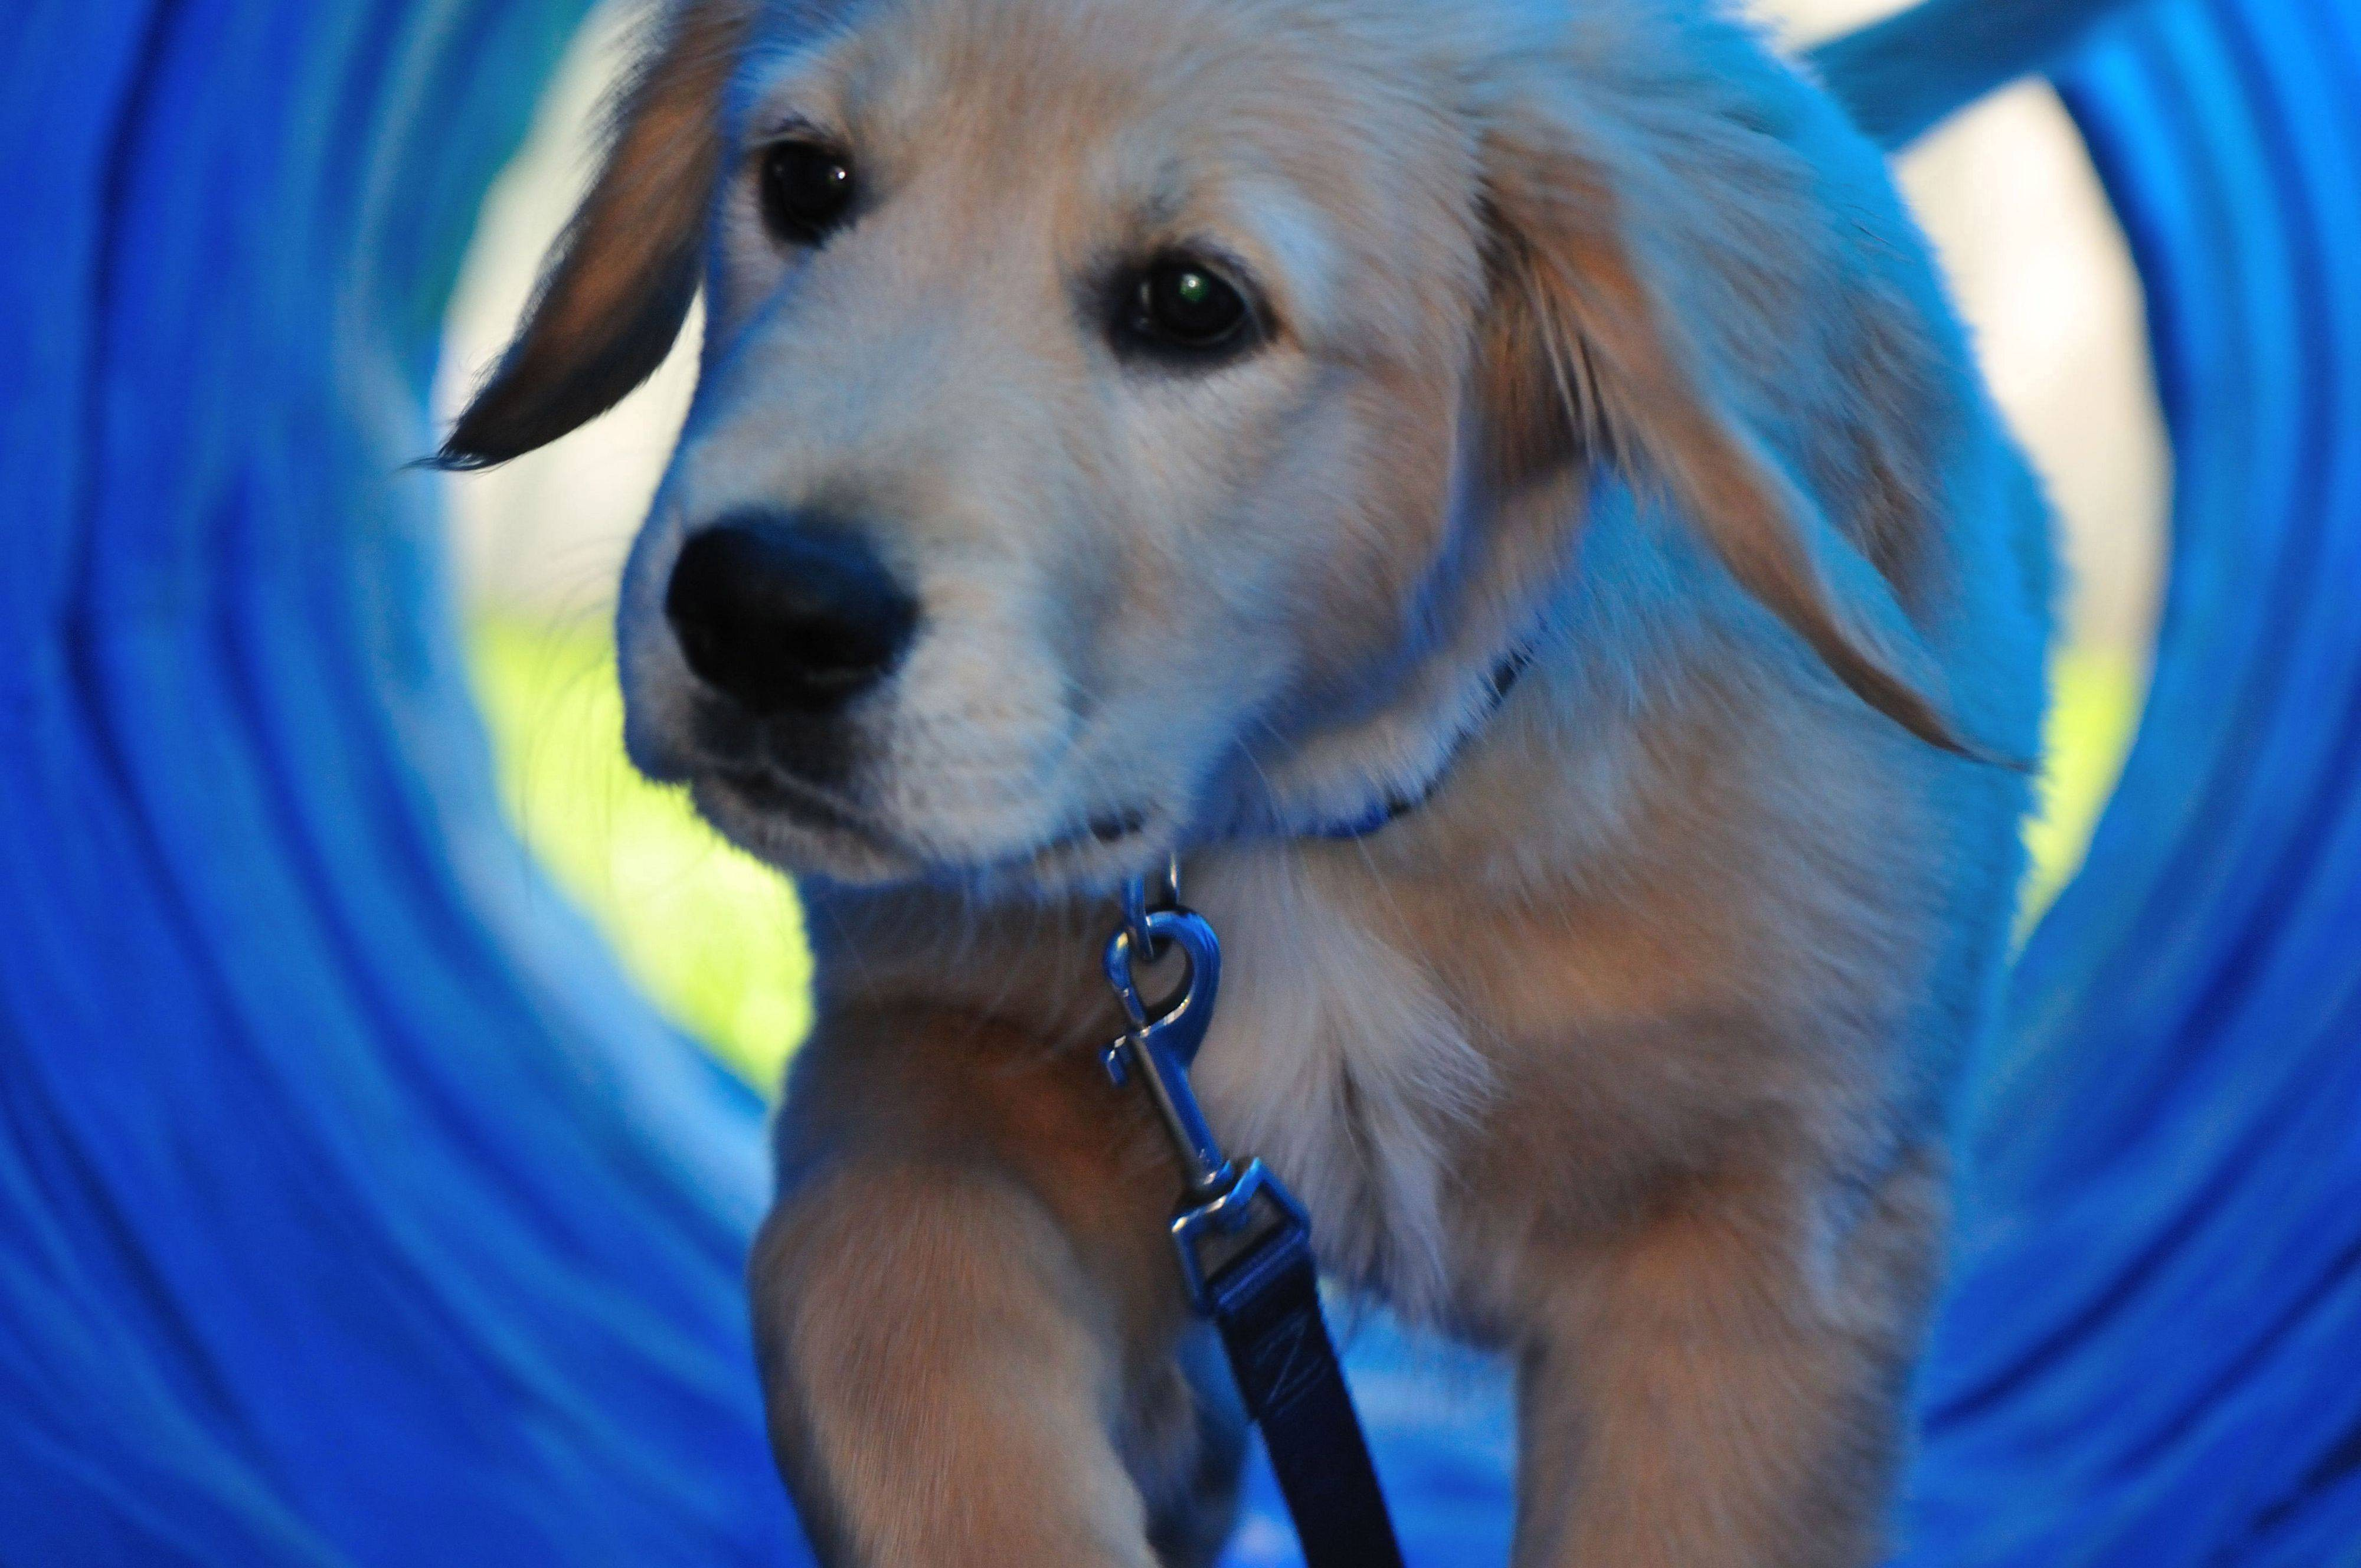 A young golden retriever pup gets his first introduction to the tunnel on an agility course last month.